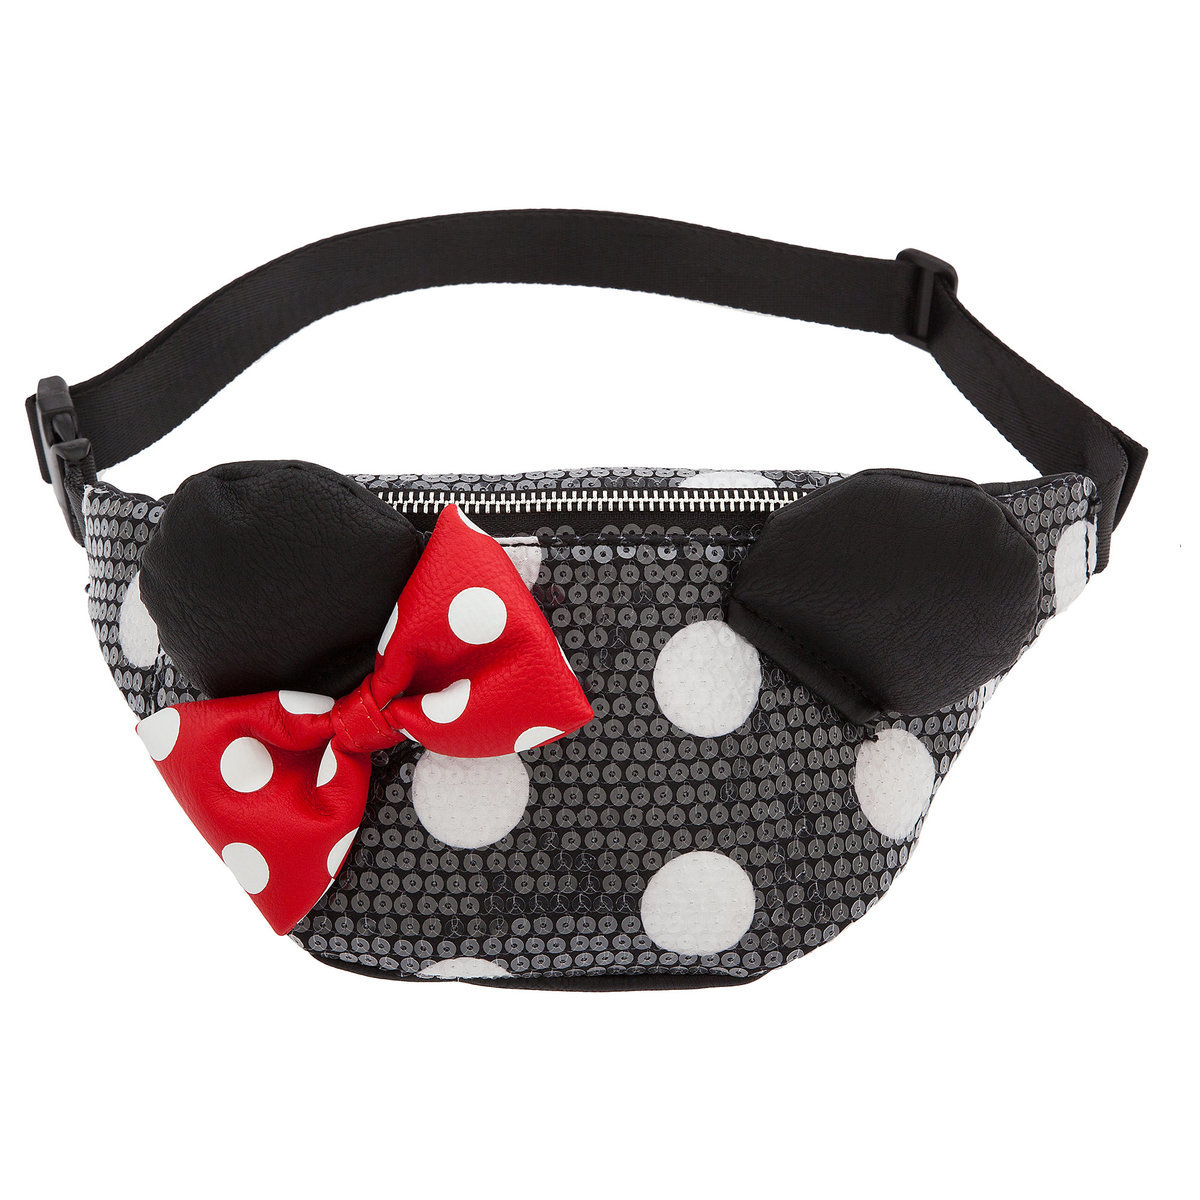 12602e4a98d Product Image of Minnie Mouse Sequined Hip Pack by Loungefly   1